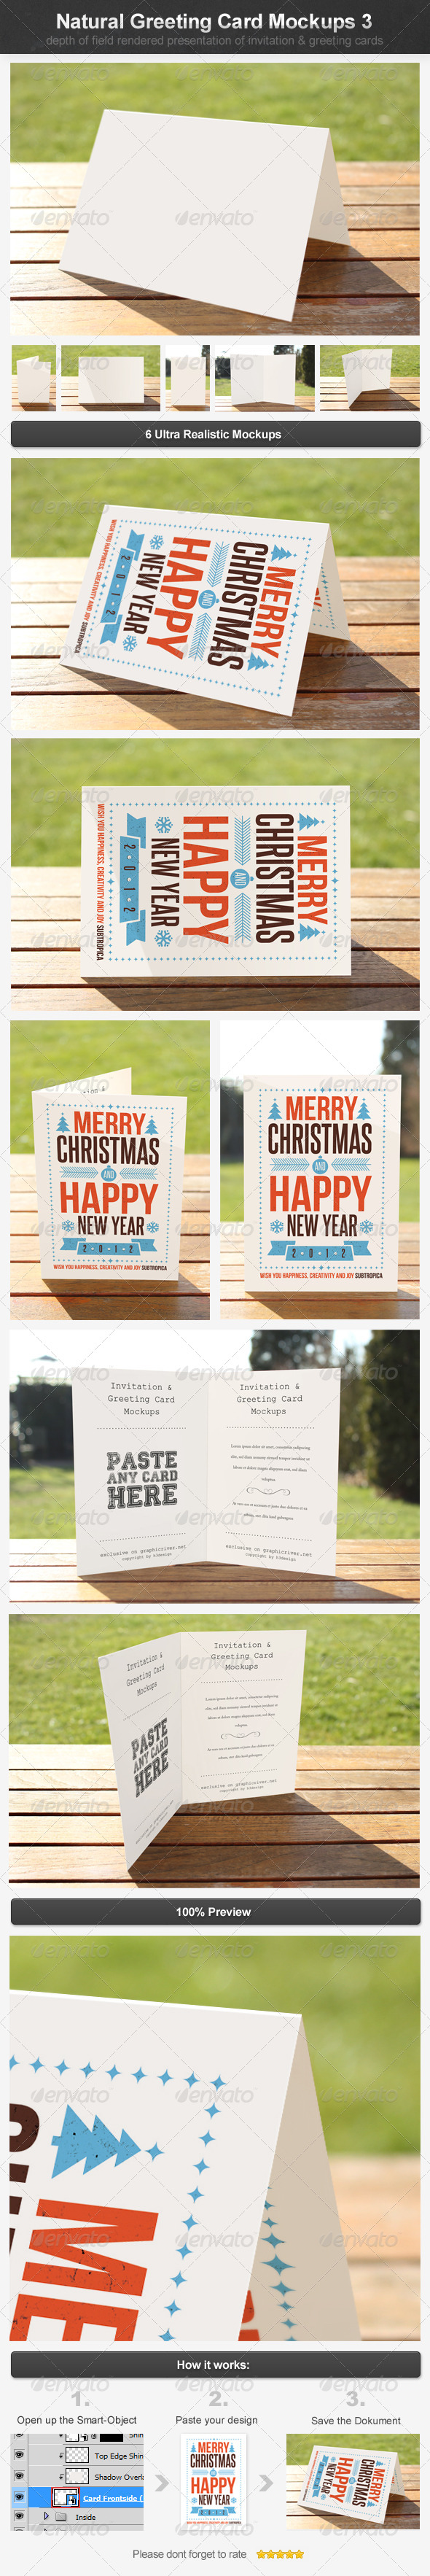 GraphicRiver Natural Greeting Card Mockups 3 4395802